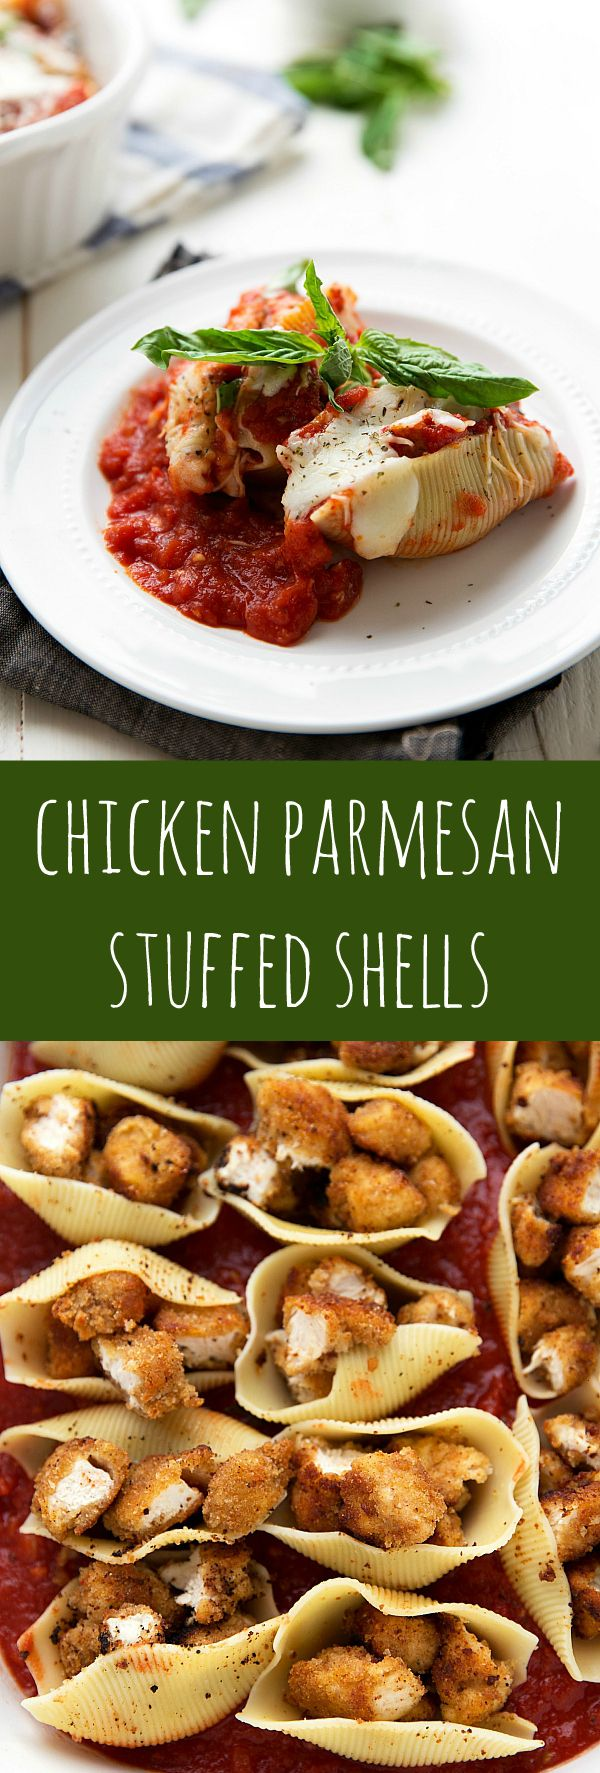 Chicken Parmesan Stuffed Shells - The best way to enjoy chicken parmesan! In stuffed shells and smothered with a delicious marinara sauce